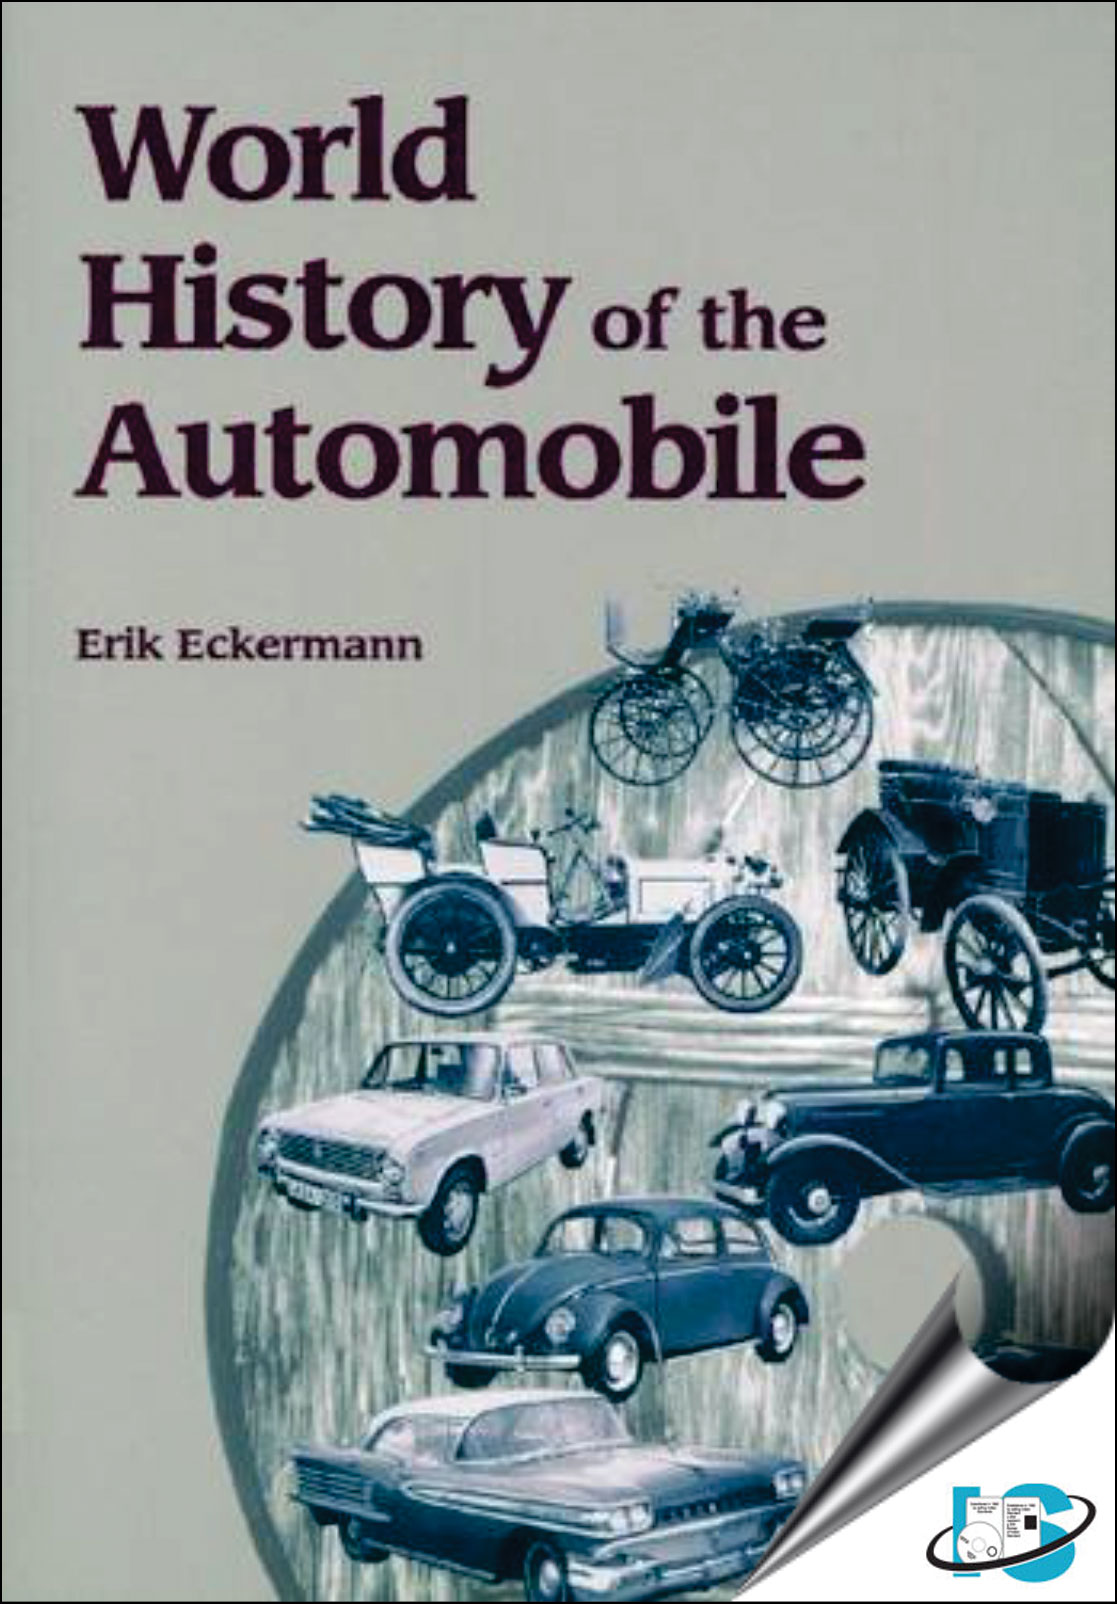 the development of the automobile and how This effectively killed road auto development in the uk for most of the rest of the 19th century, as inventors and engineers shifted their efforts to the many varieties of automobile racing collectively constitute one of the most popular categories of sport in the world today, the usa has more cars.